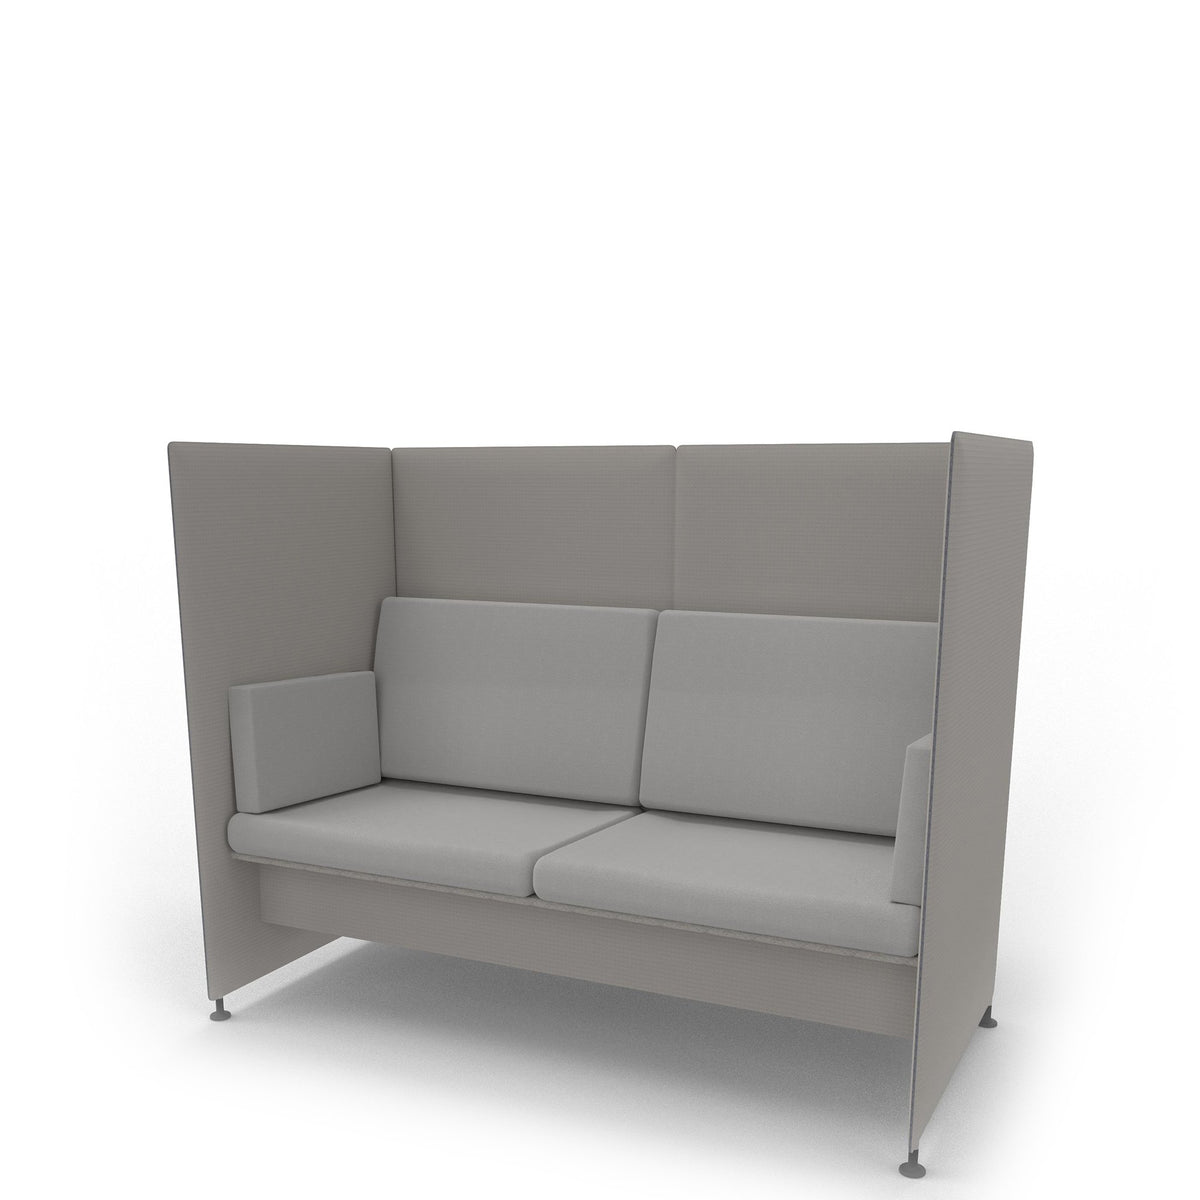 Edsbyn Ease Sofa Pod with Silver Cushions